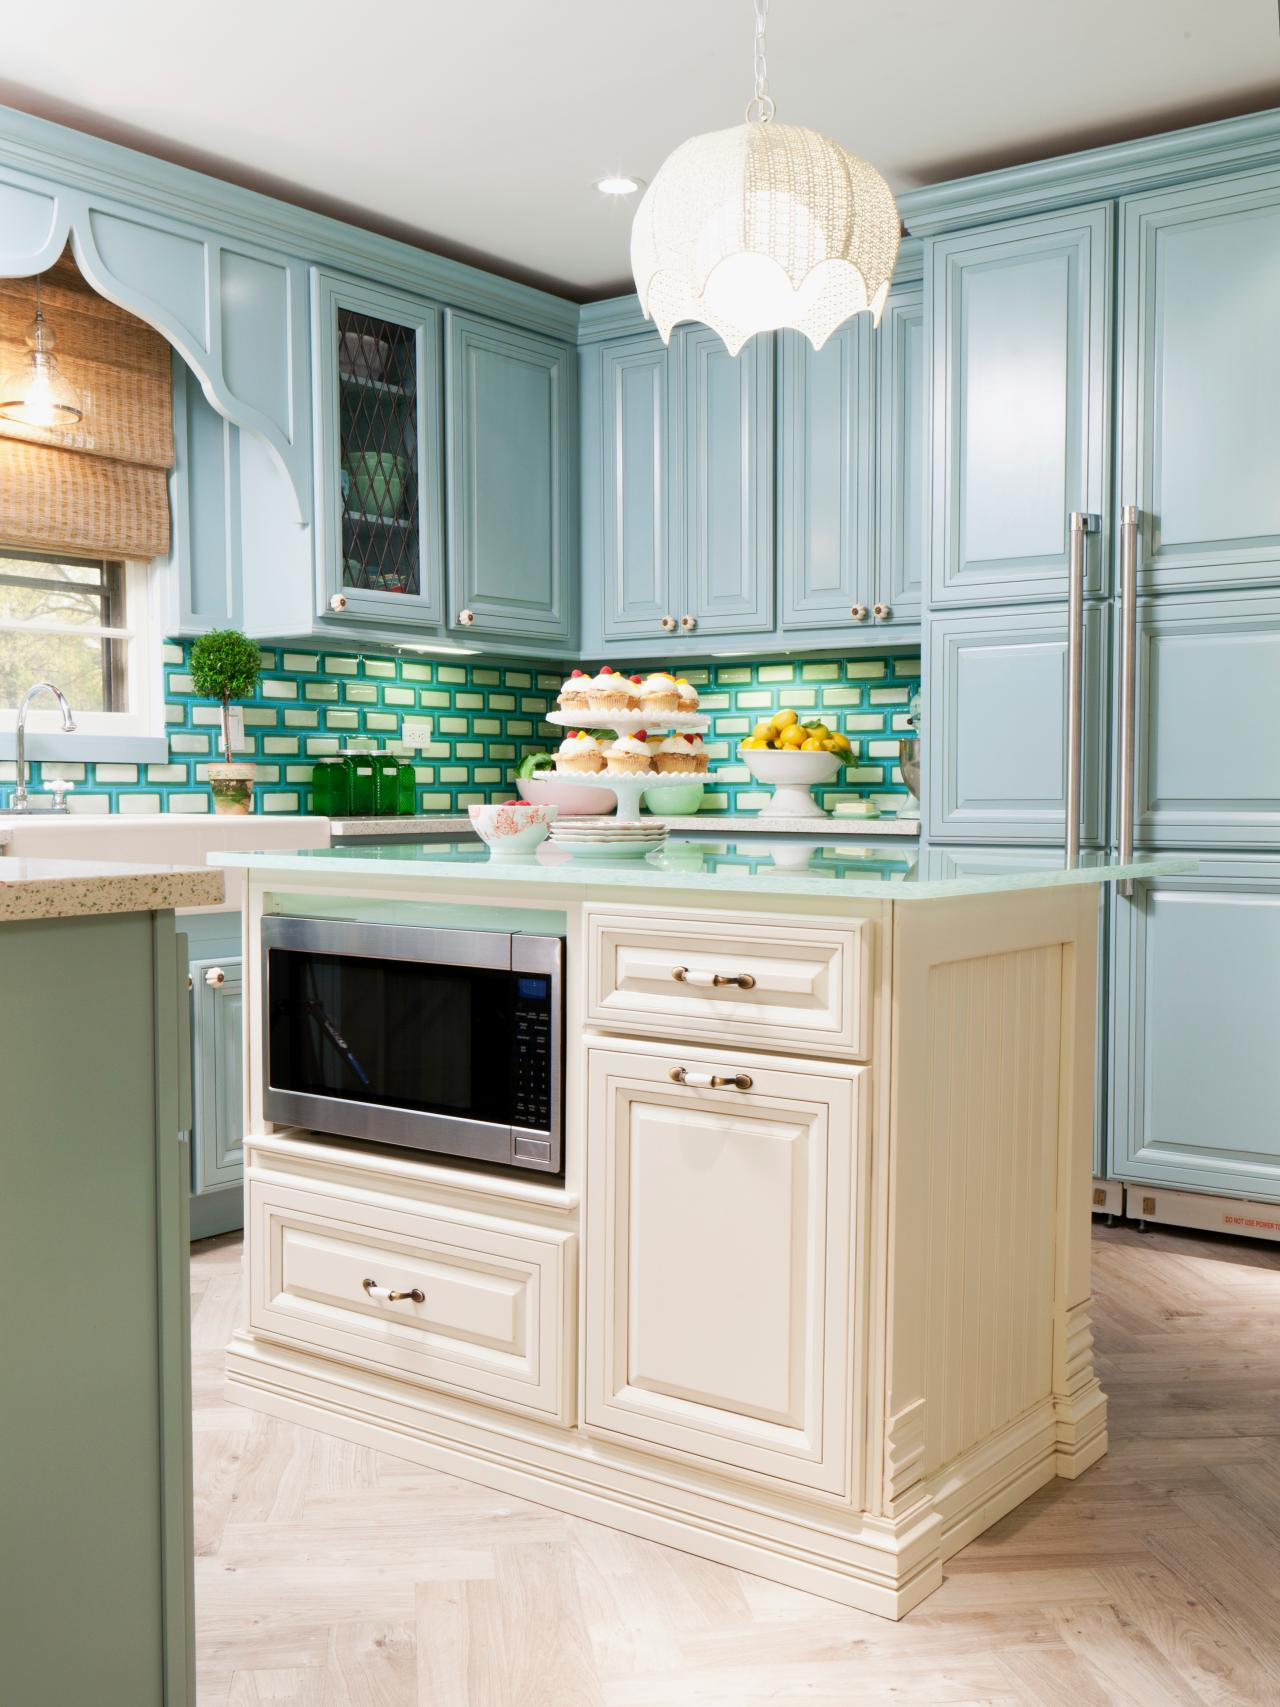 Light Blue Kitchen Walls Room Image And Wallper 2017: blue kitchen paint color ideas